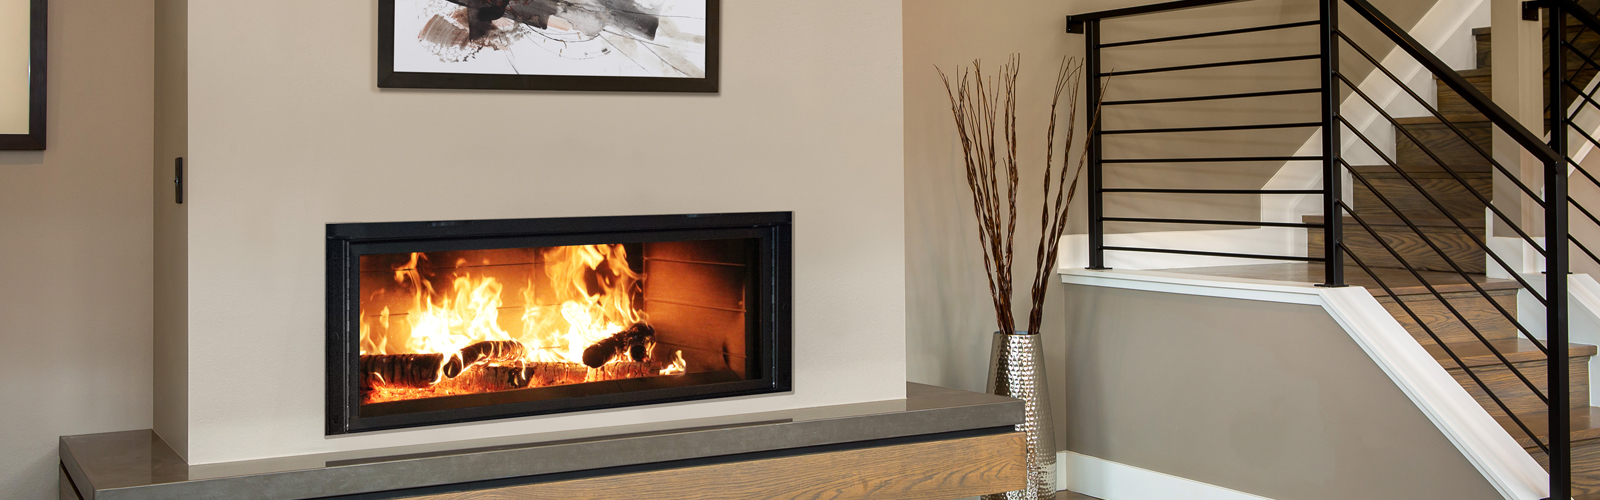 Design For Fireplace Custom Fireplaces Ottawa Hubert S Fireplaces